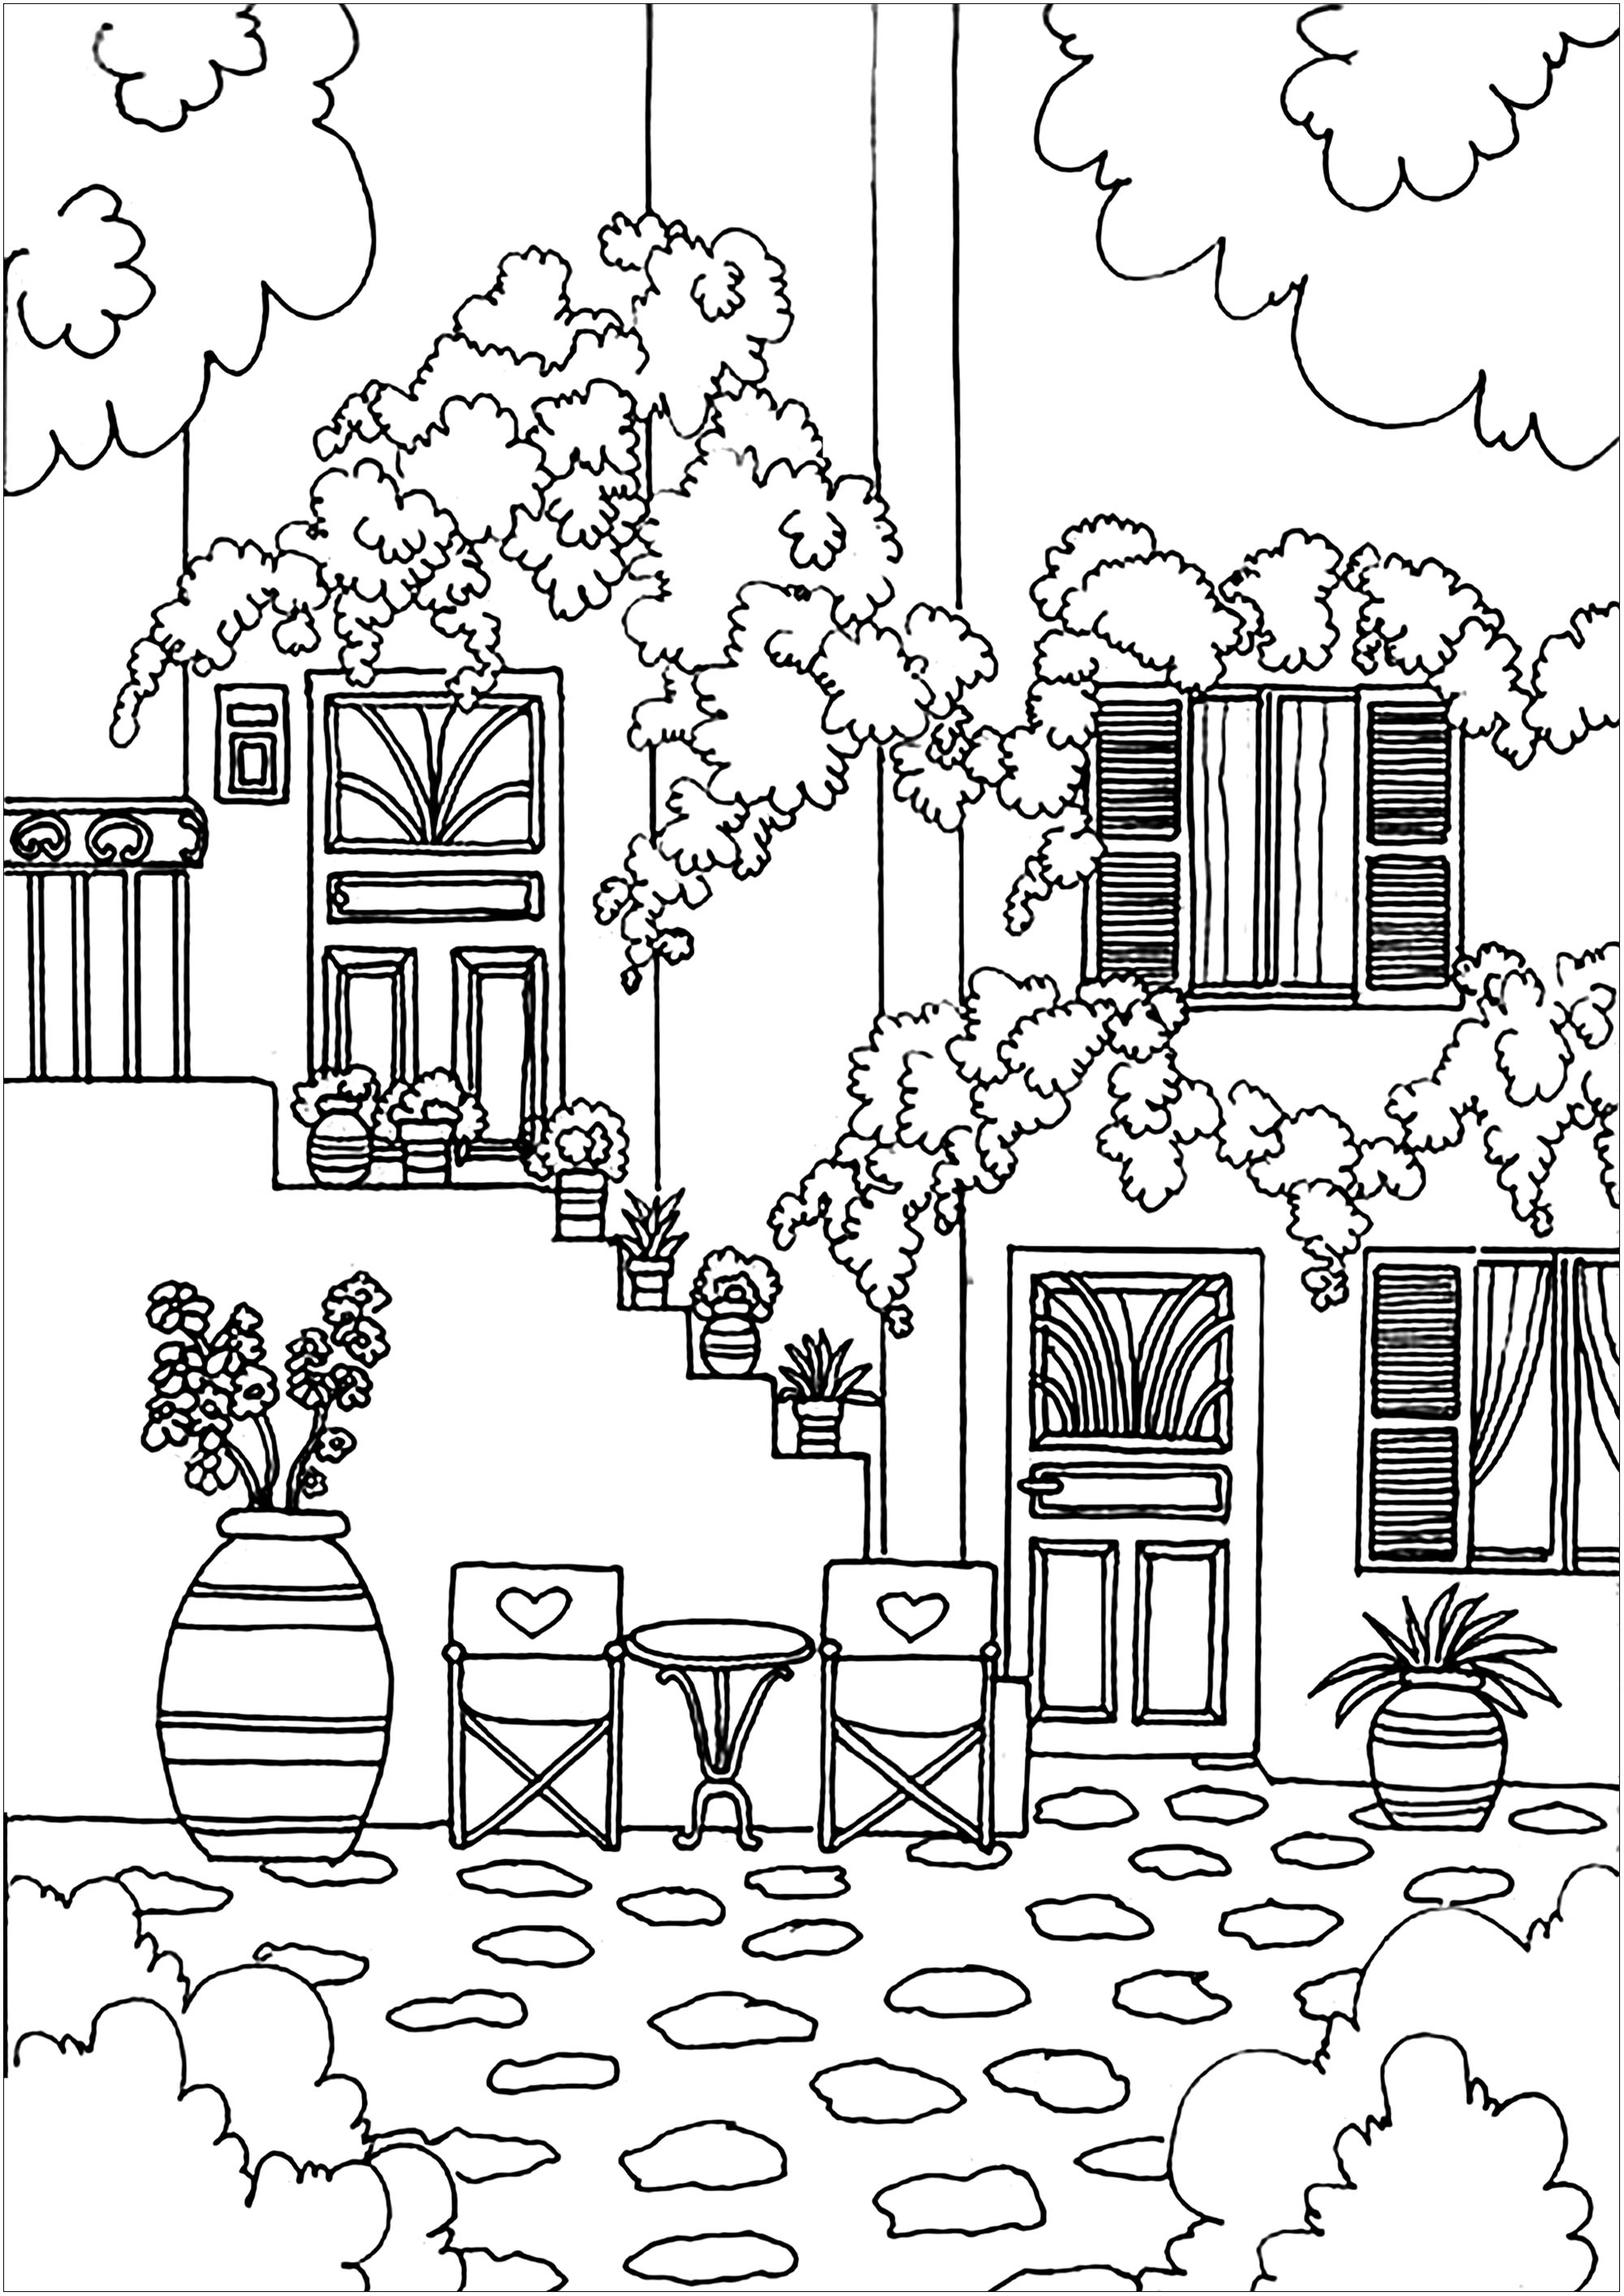 coloring page house 9 house coloring pages jpg ai illustrator download house page coloring